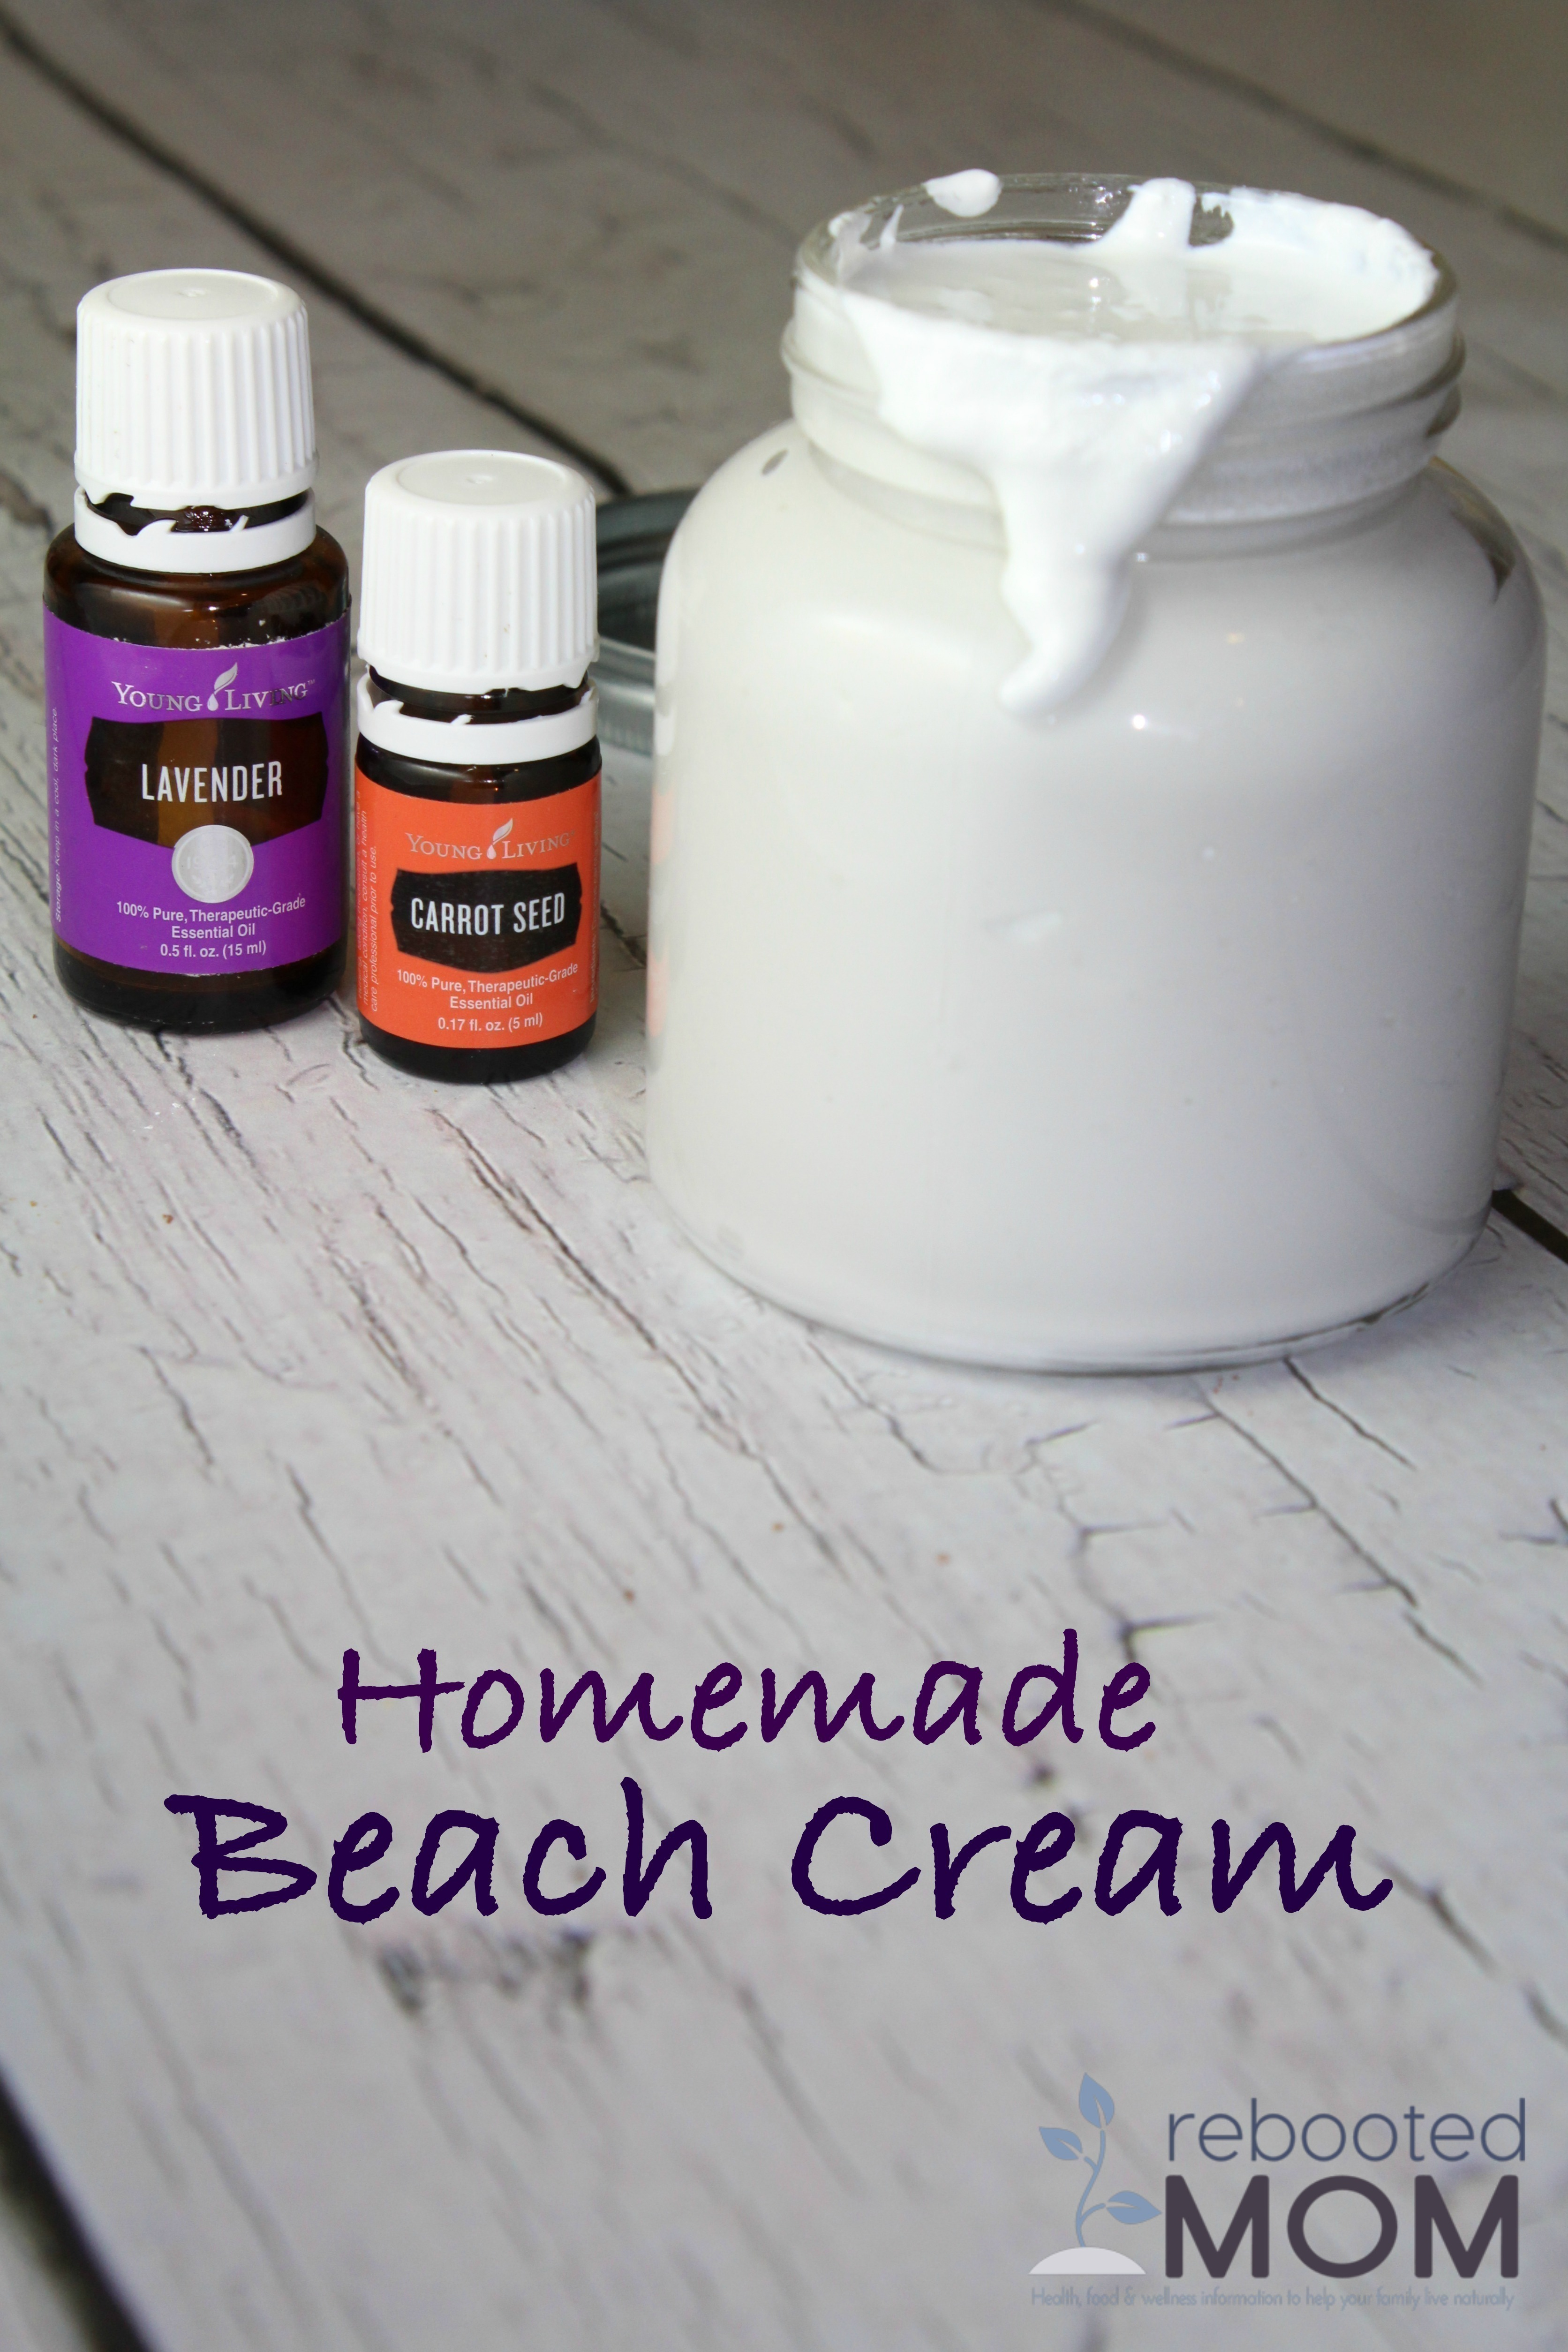 Homemade Beach Cream {Safe & Non-Toxic}